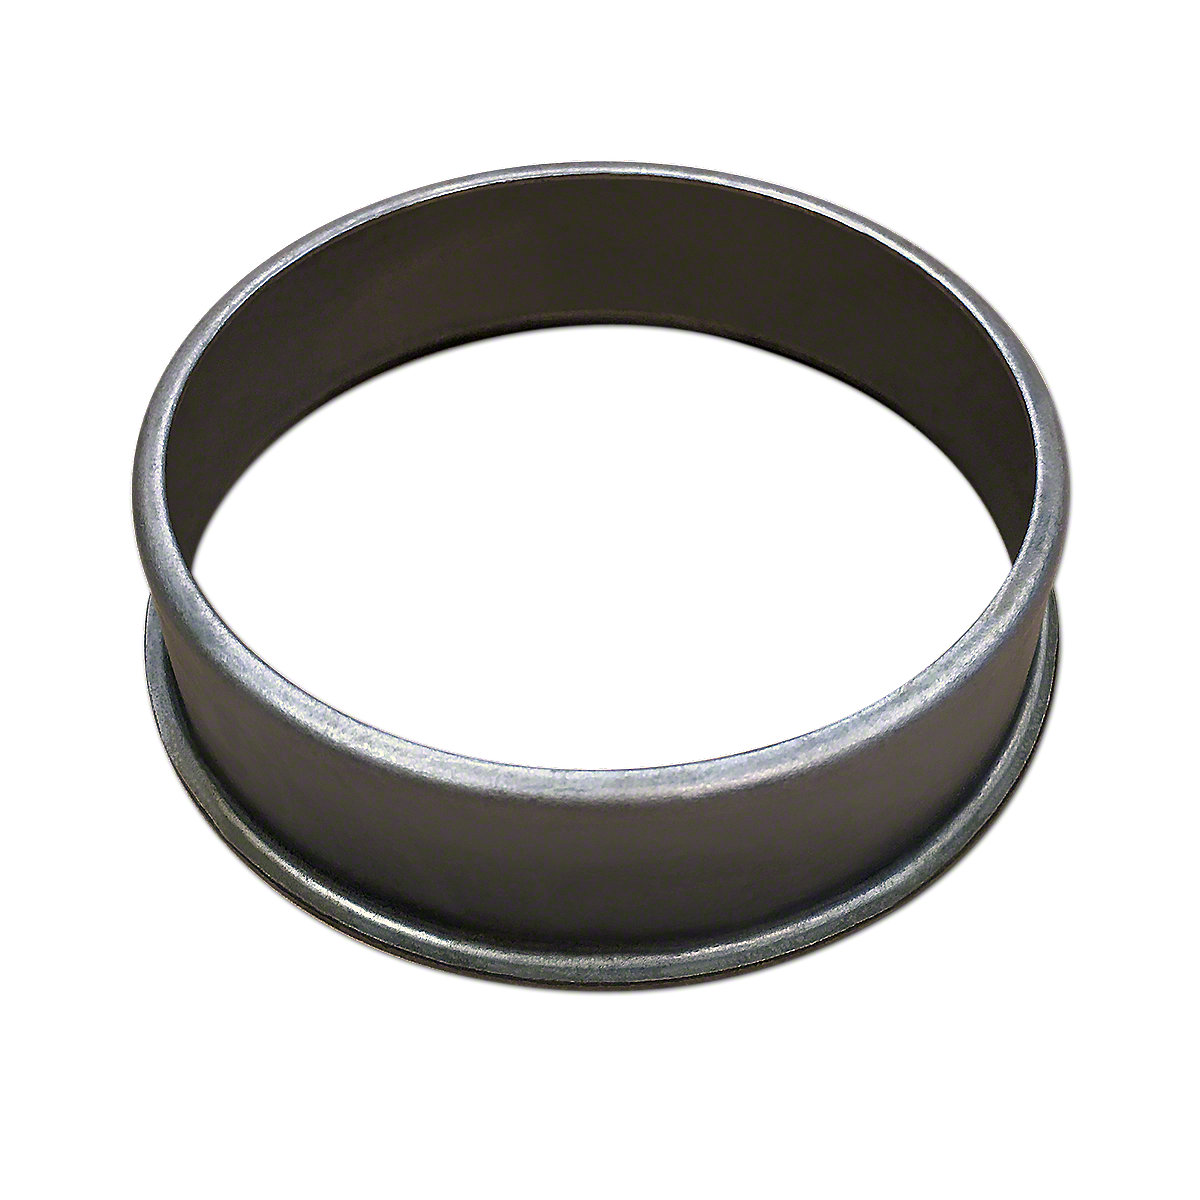 IHS3655 Front Wheel Seal Retainer (Wear Sleeve)